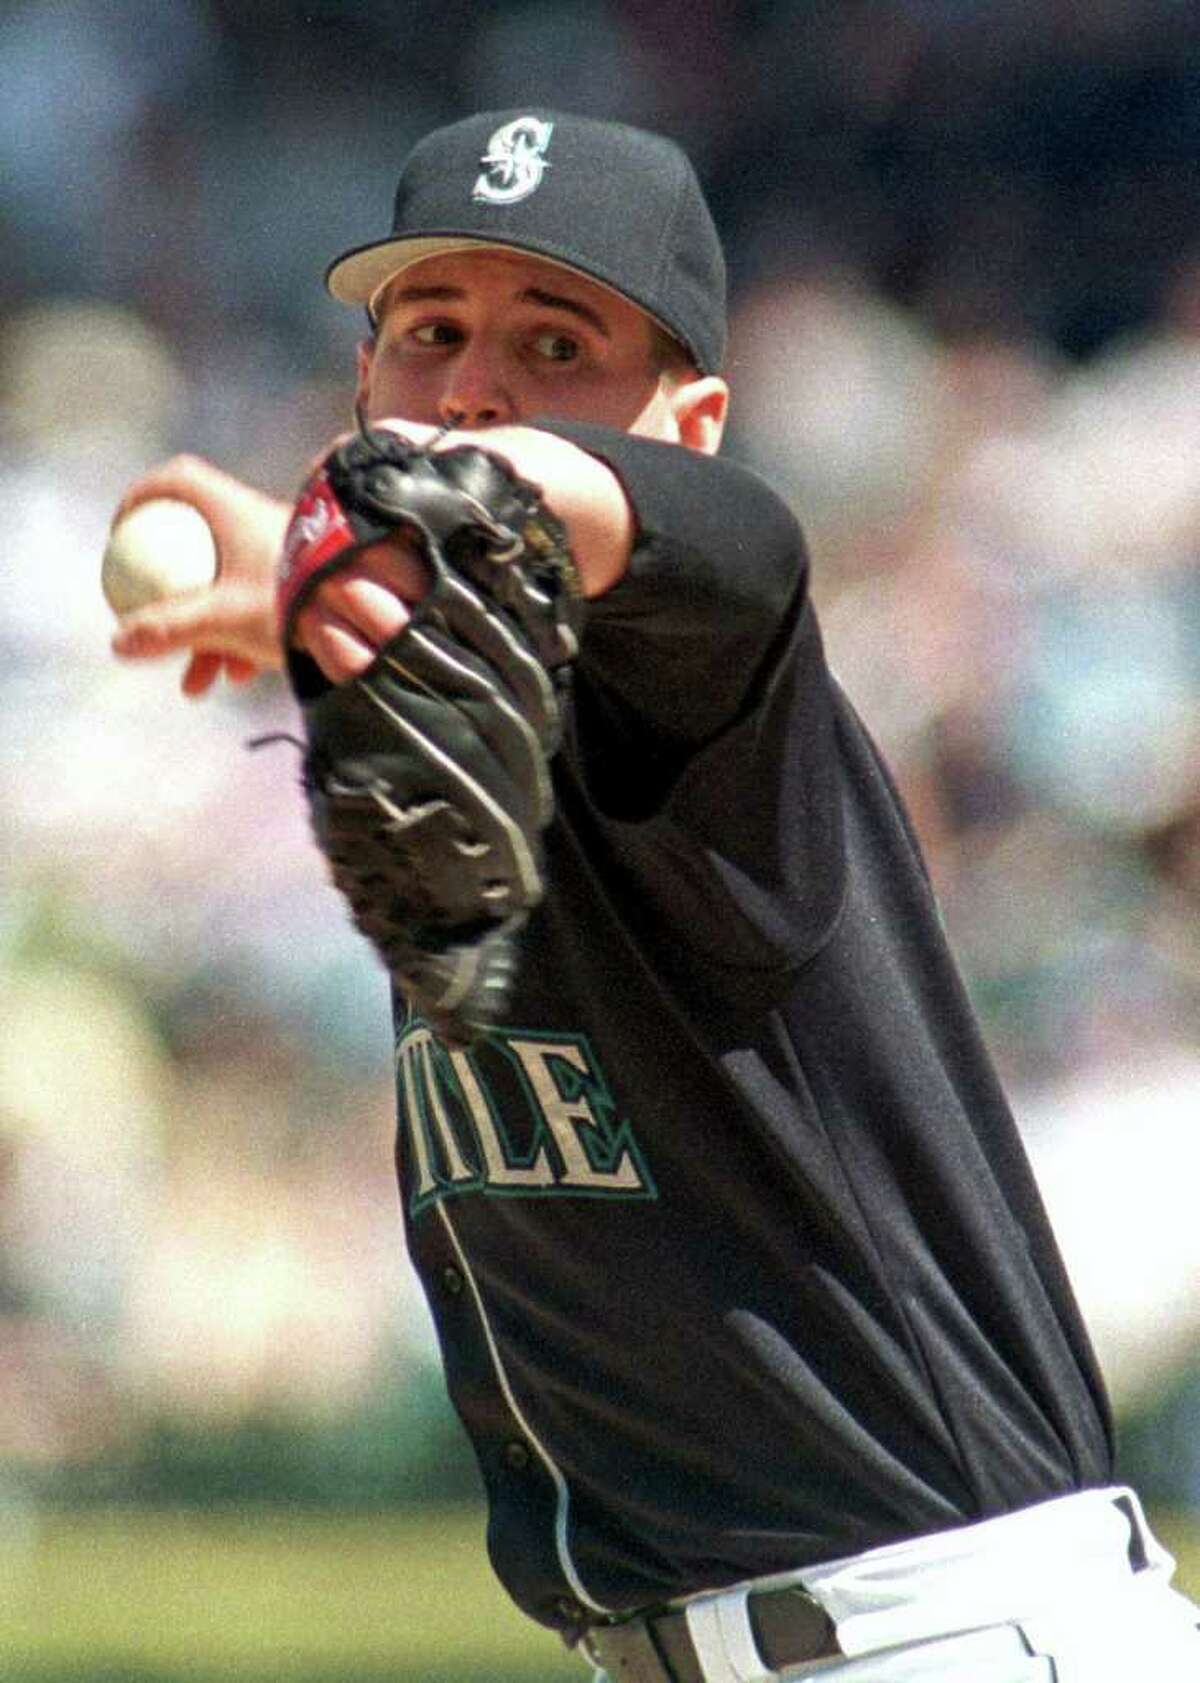 10. Gil Meche: Meche was the Mariners' first-round draft pick out of high school in 1996, and he tore through the farm system to make his major league debut midway through the 1999 season. He started 15 games, going 8-4 with a 4.73 ERA and striking out 47 in 85.2 innings. The promising start soon gave way to the reality that Meche was a decent major league arm, but he would never be an elite hurler. He went 55-44 with a 4.65 ERA over six seasons with the Mariners before signing with the Kansas City Royals as a free agent after the 2006 season. Meche retired before the 2011 season because of shoulder problems, walking away from more than $12 million in guaranteed salary.